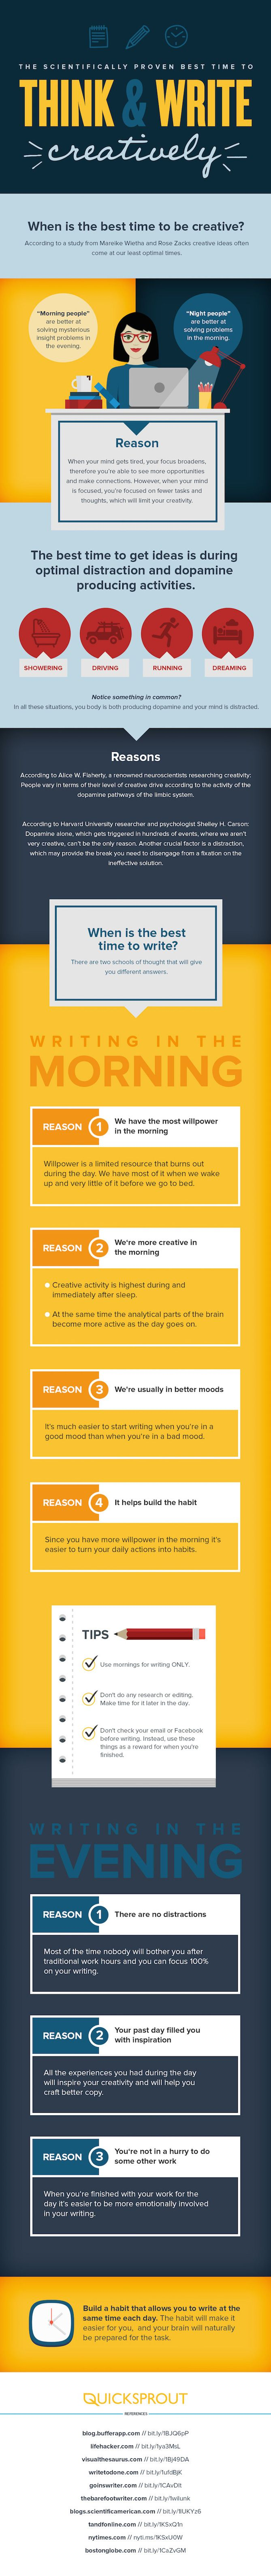 The Scientifically Proven Best Time to Write & Think Creatively [Infographic] (via @HubSpot)